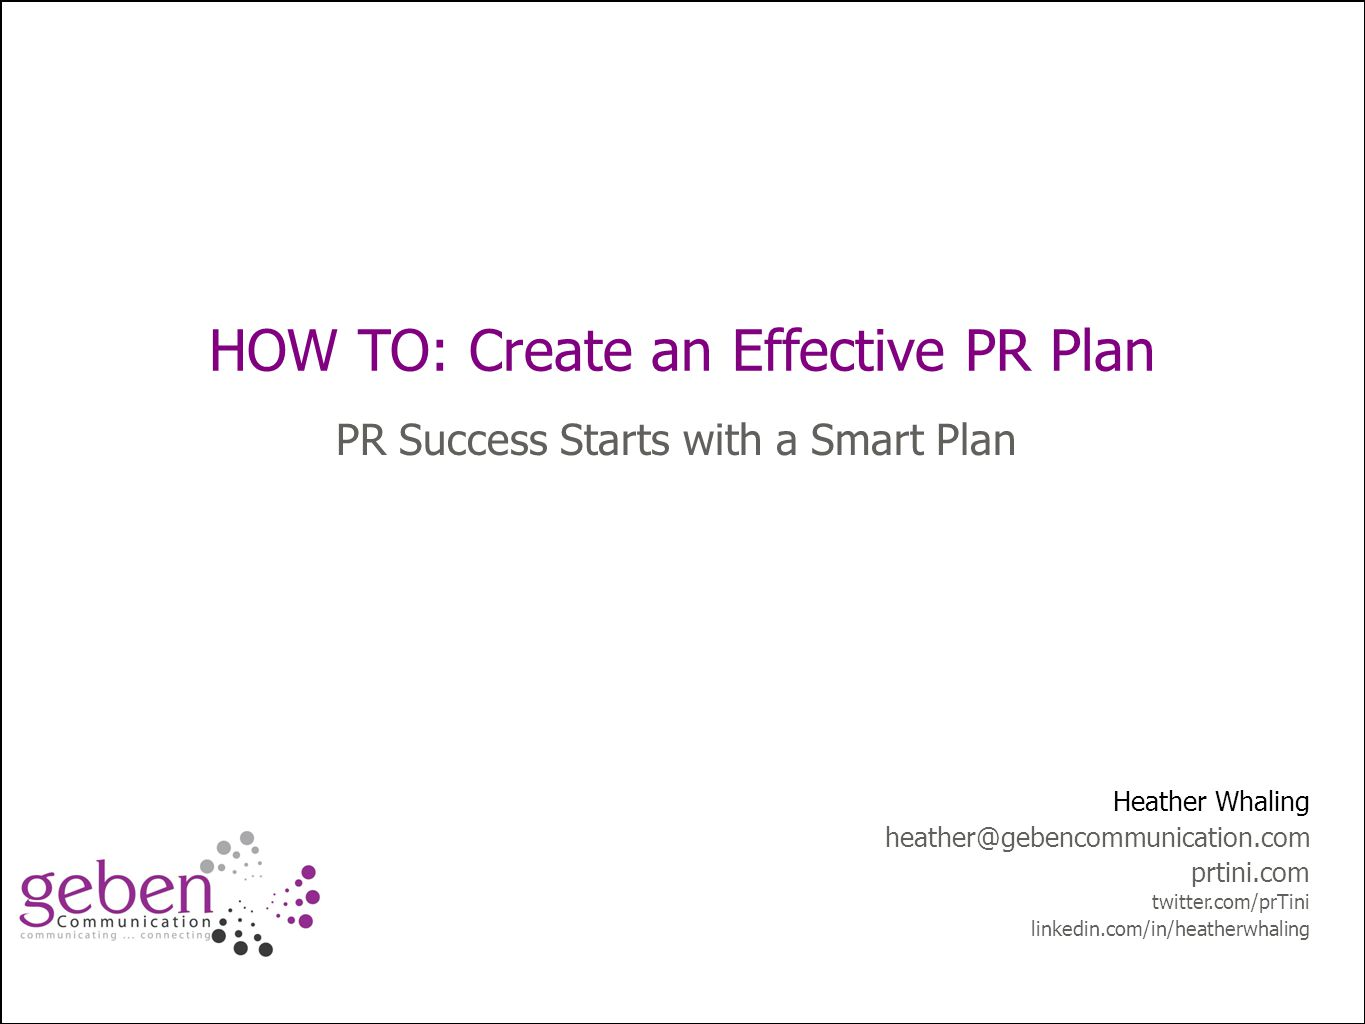 How to: Improve Public Relations Planning HOW TO: Create an Effective PR Plan PR Success Starts with a Smart Plan Heather Whaling heather@gebencommunication.com prtini.com twitter.com/prTini linkedin.com/in/heatherwhaling